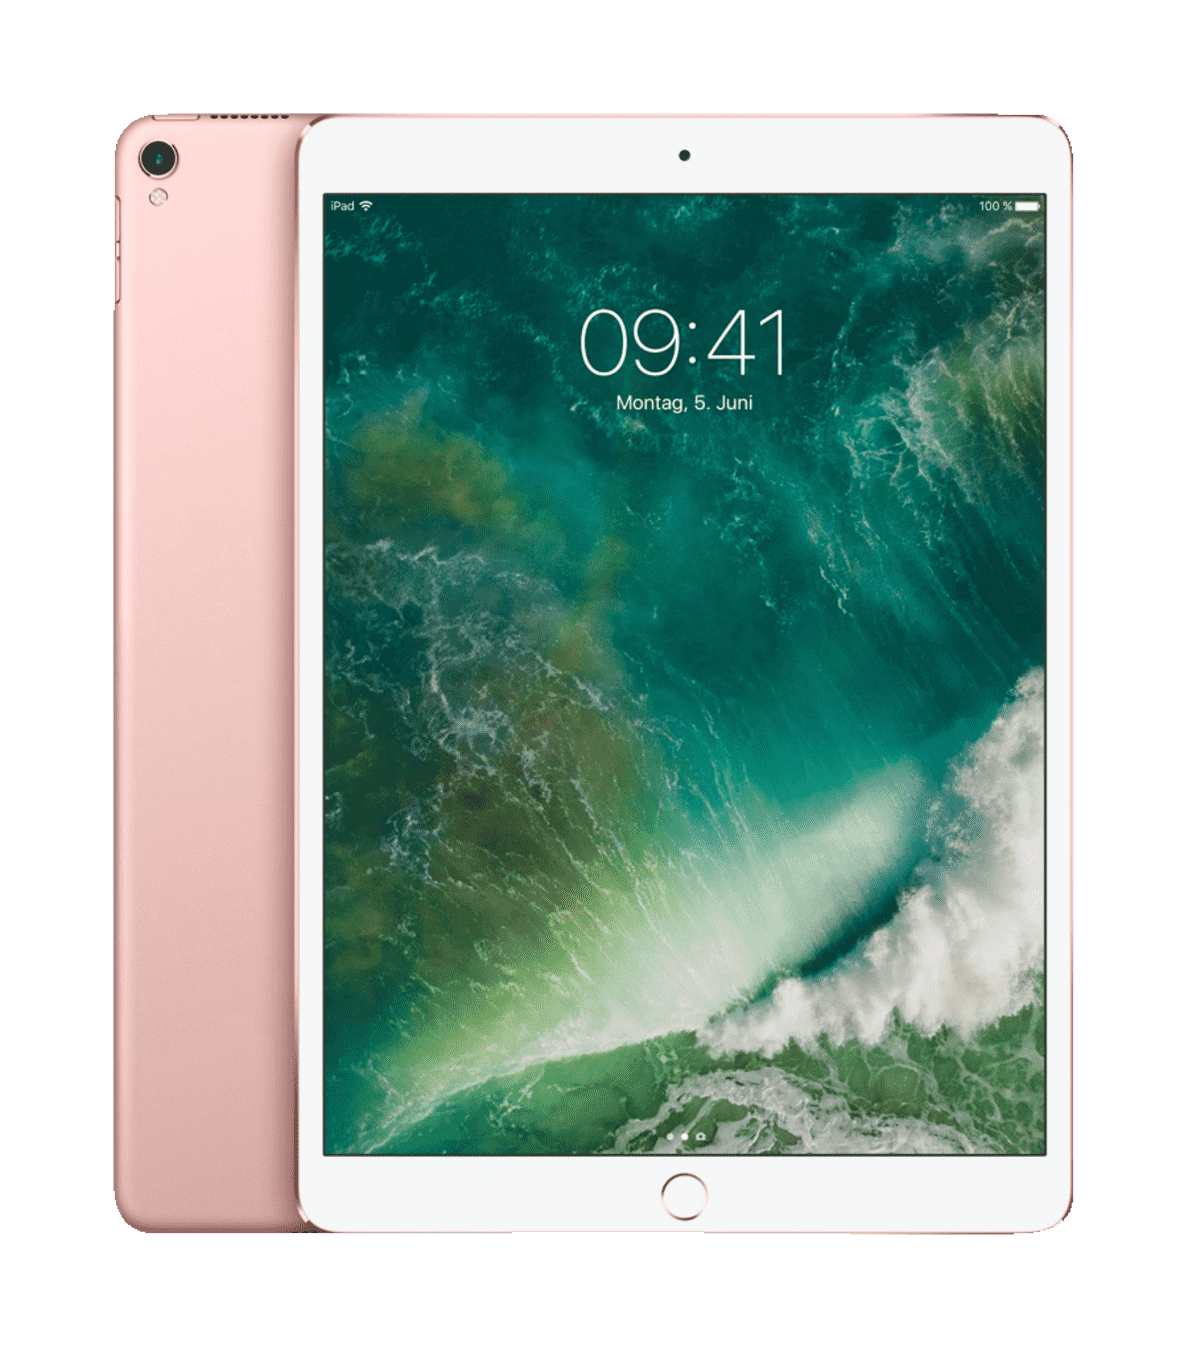 APPLE MQDY2FD/A iPad Pro Wi-Fi Tablet, 64 GB in Rose Gold